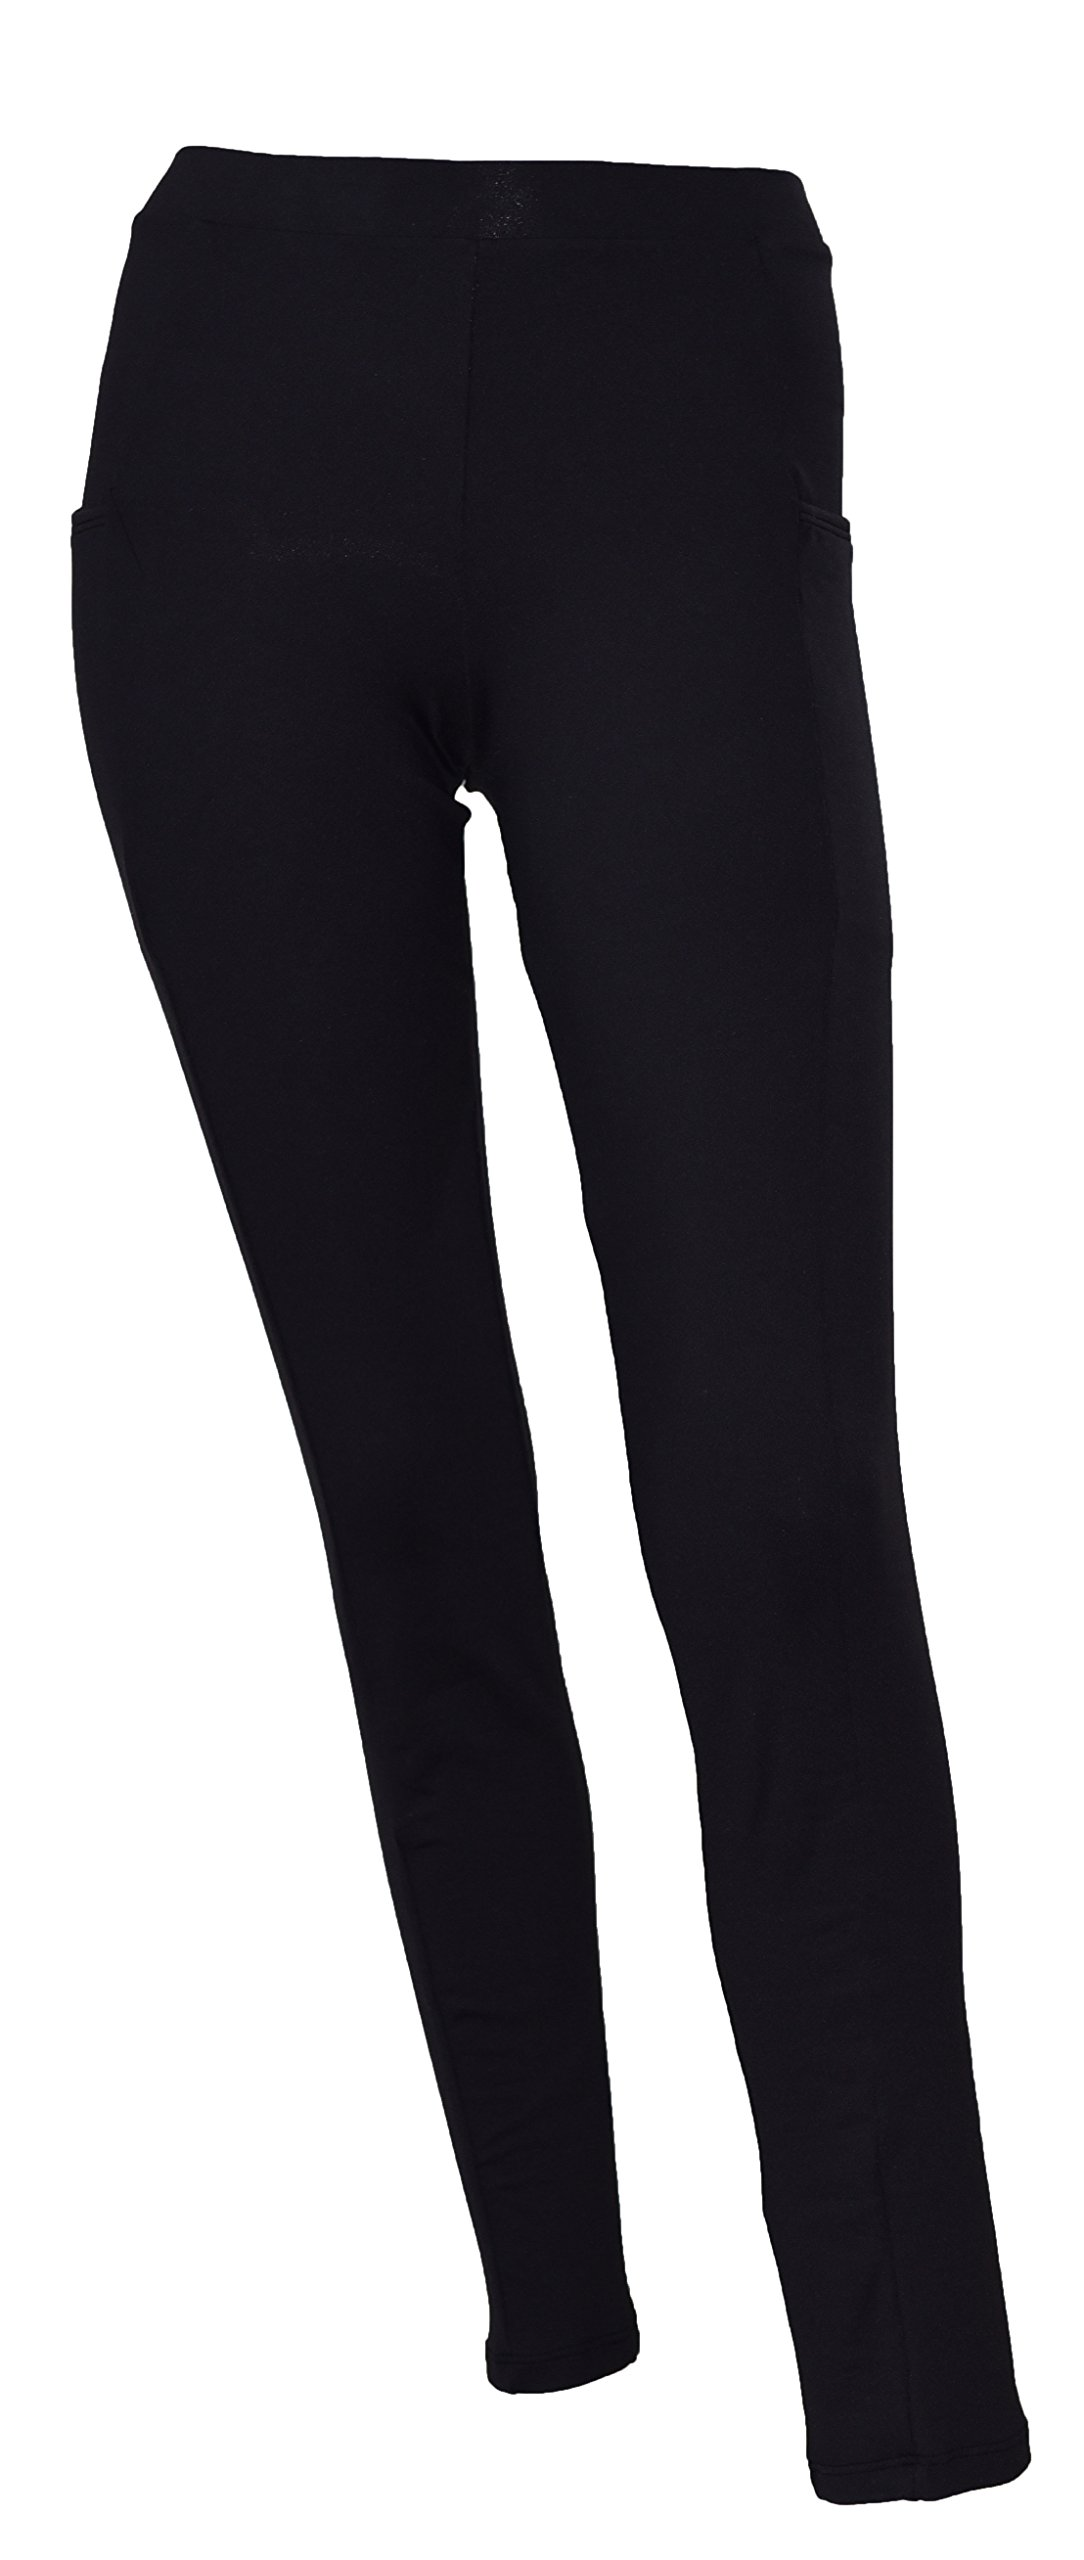 Private Island Hawaii Women UV Rash Guard Leggings Long Pants Surfing Sun Protection Swimming Suit Wide Color Scheme WTH Both Side Pocket Black X-Large